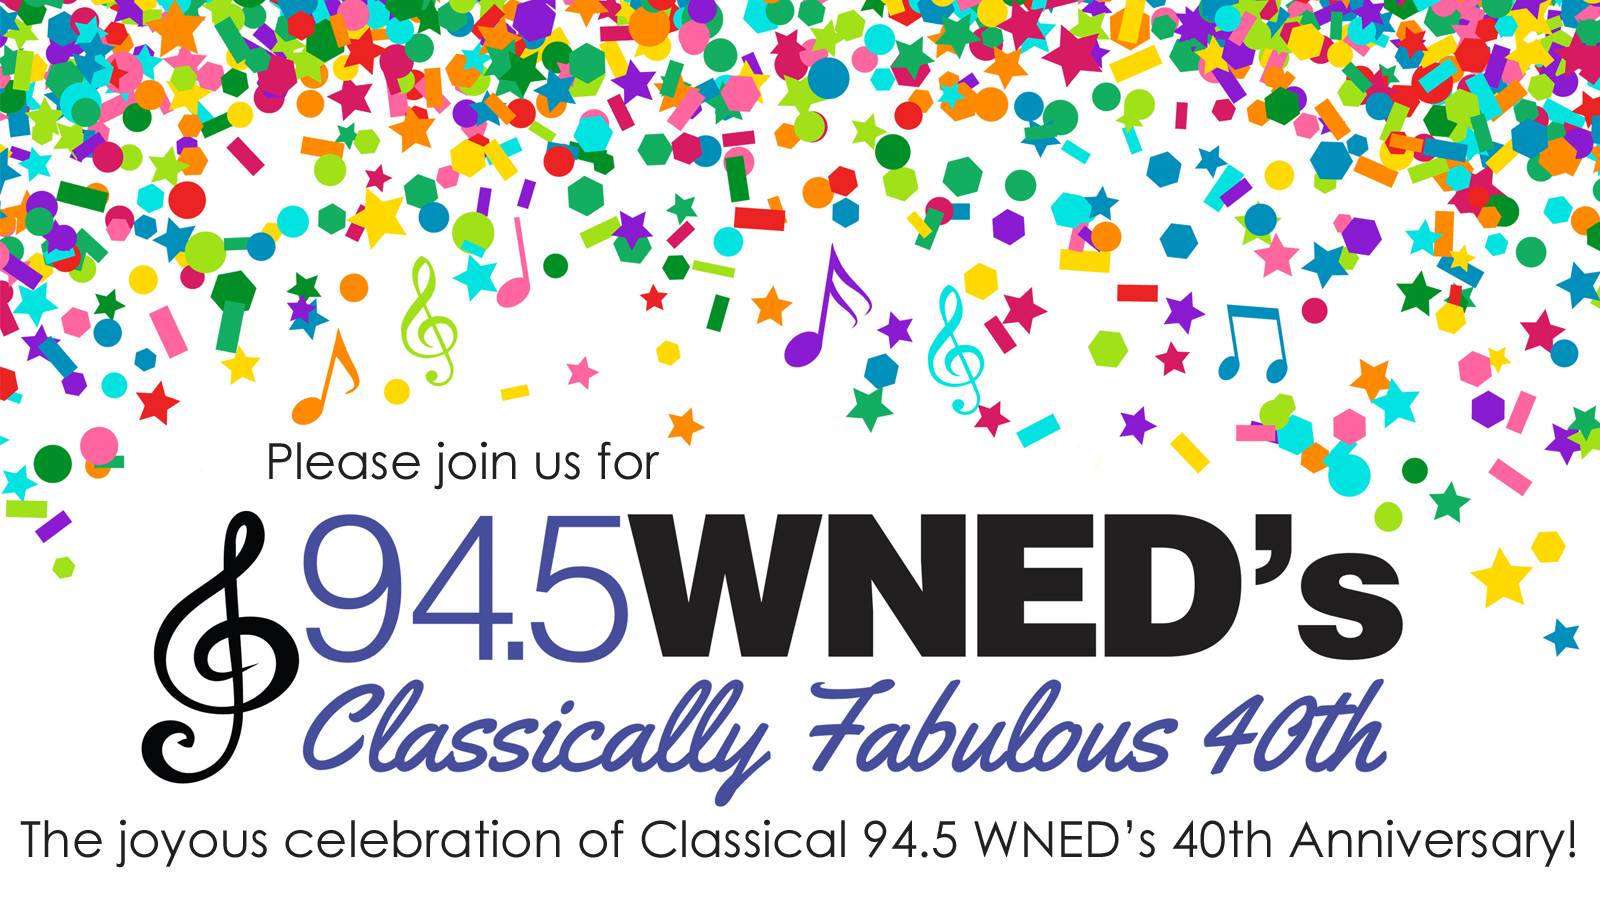 WNED's Classically Fabulous 40th!